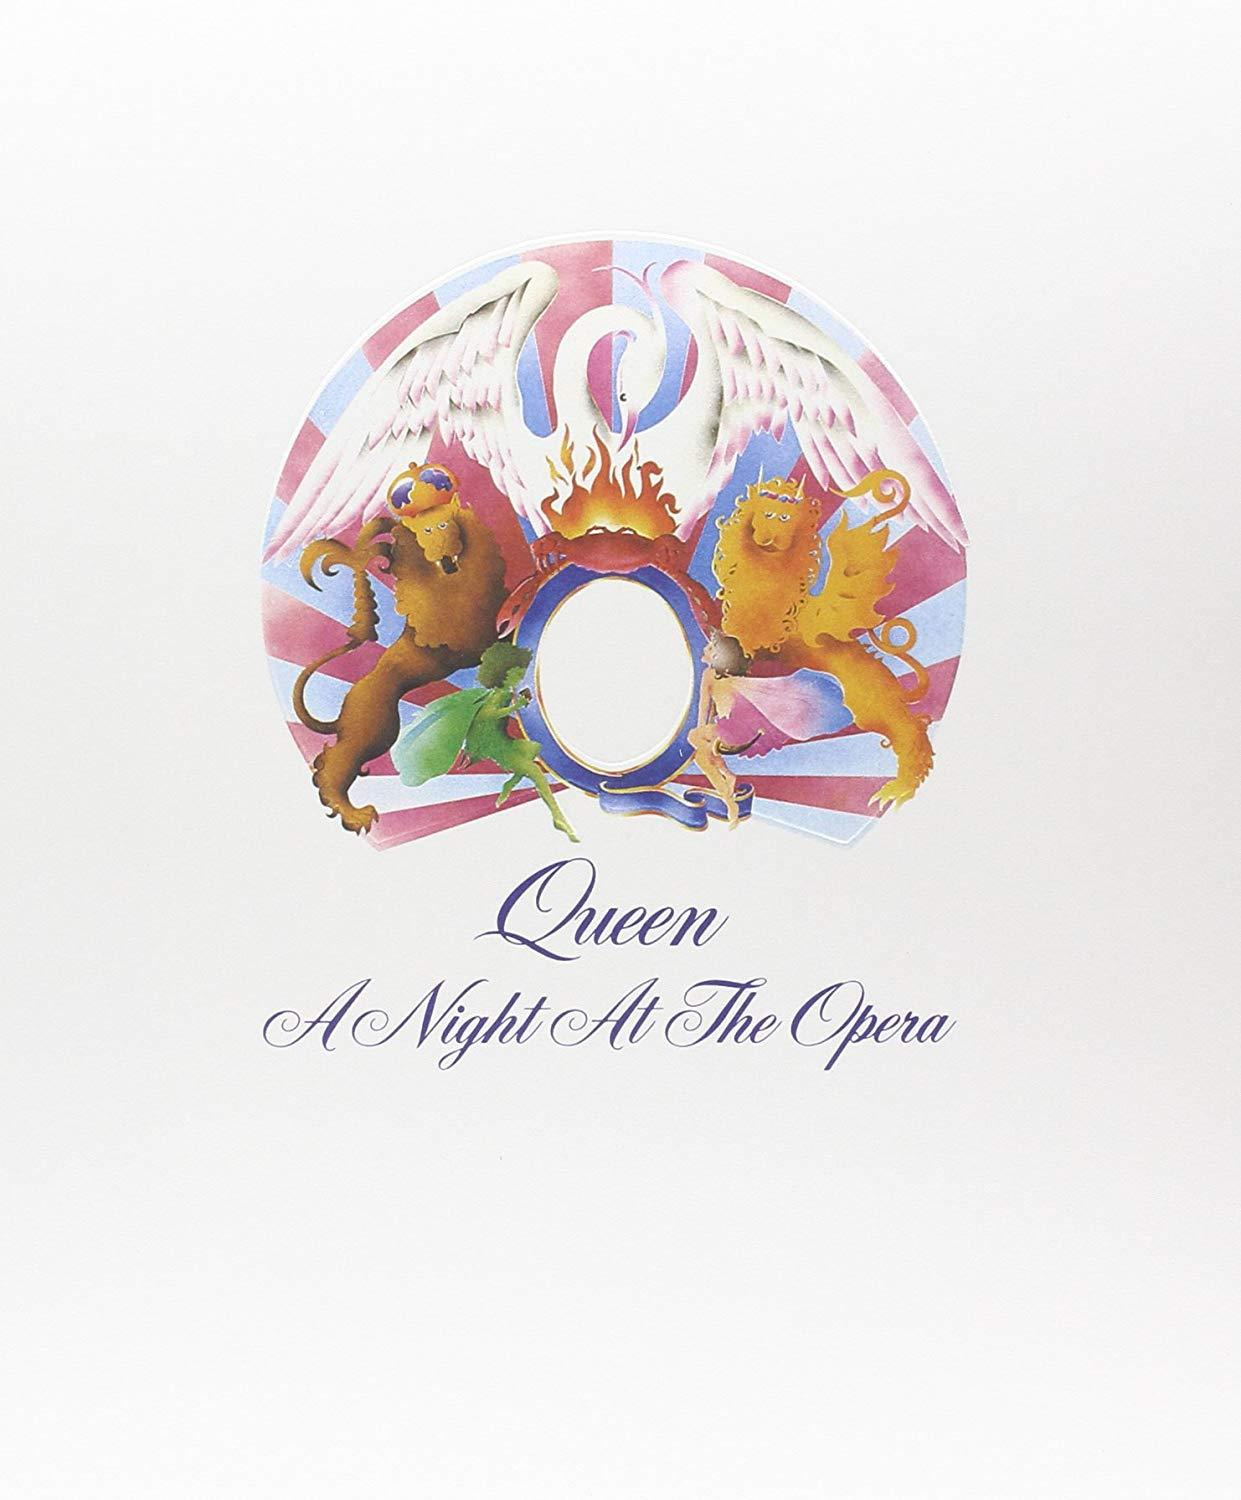 Queen - A Night At The Opera [LP] (180 Gram Vinyl)